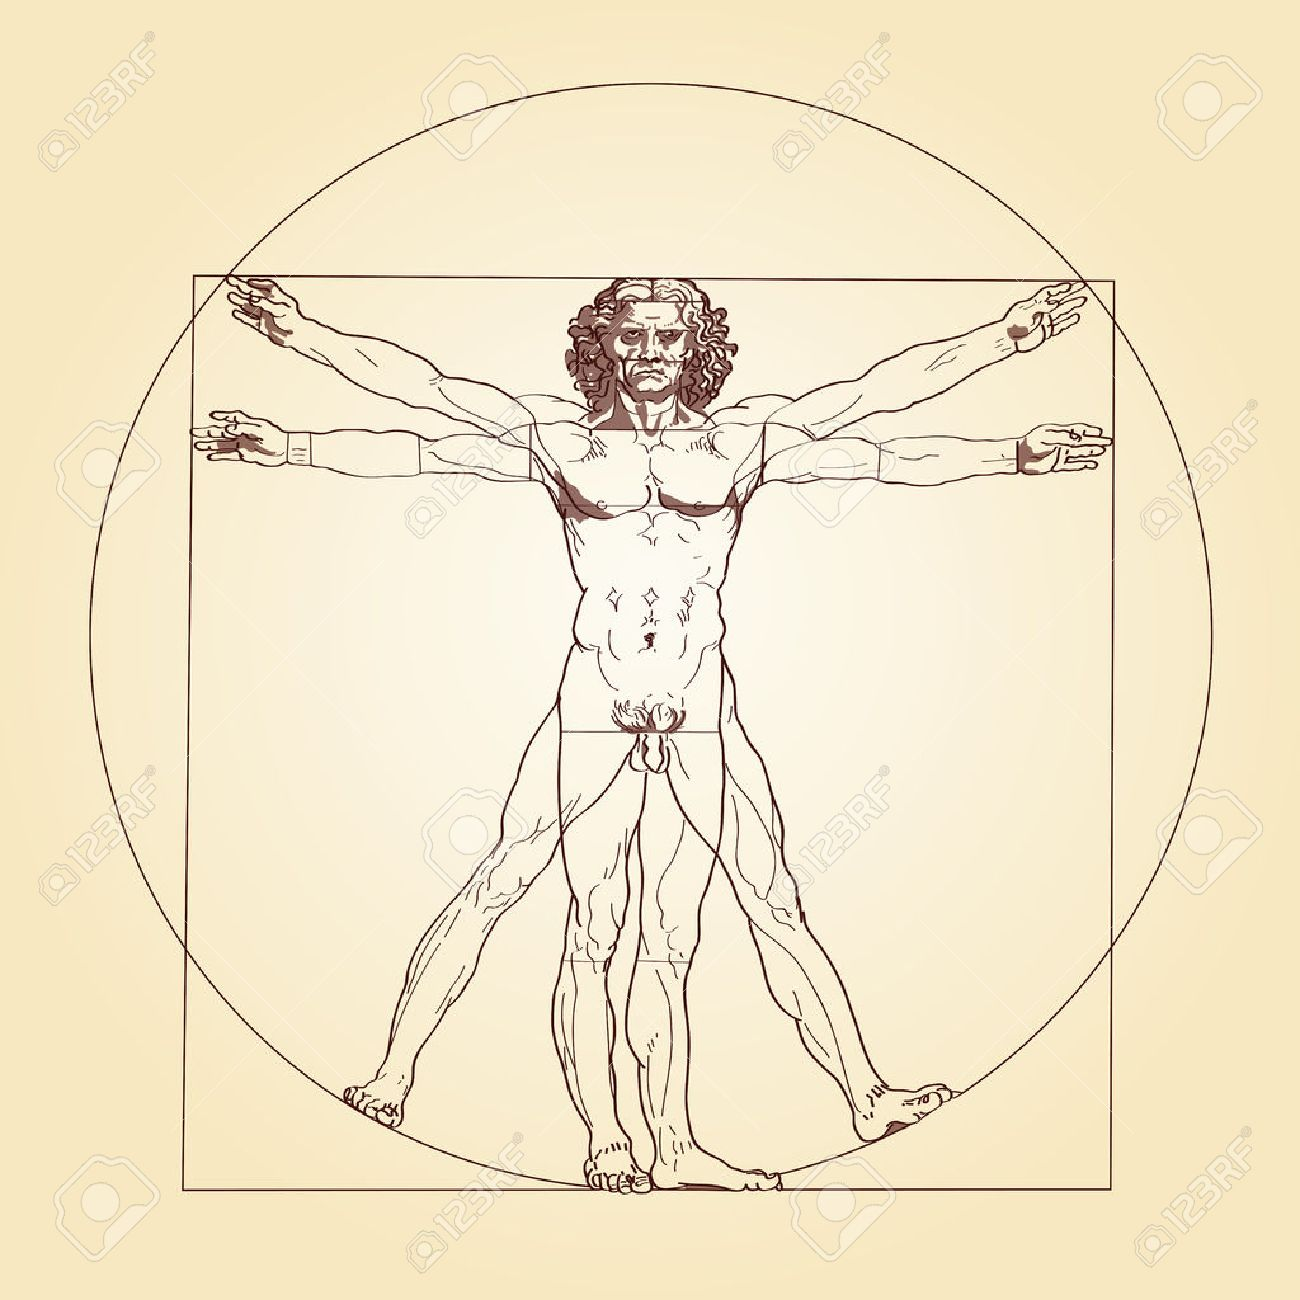 Illustration Of The Vitruvian Man Based On The Records Of Leonardo